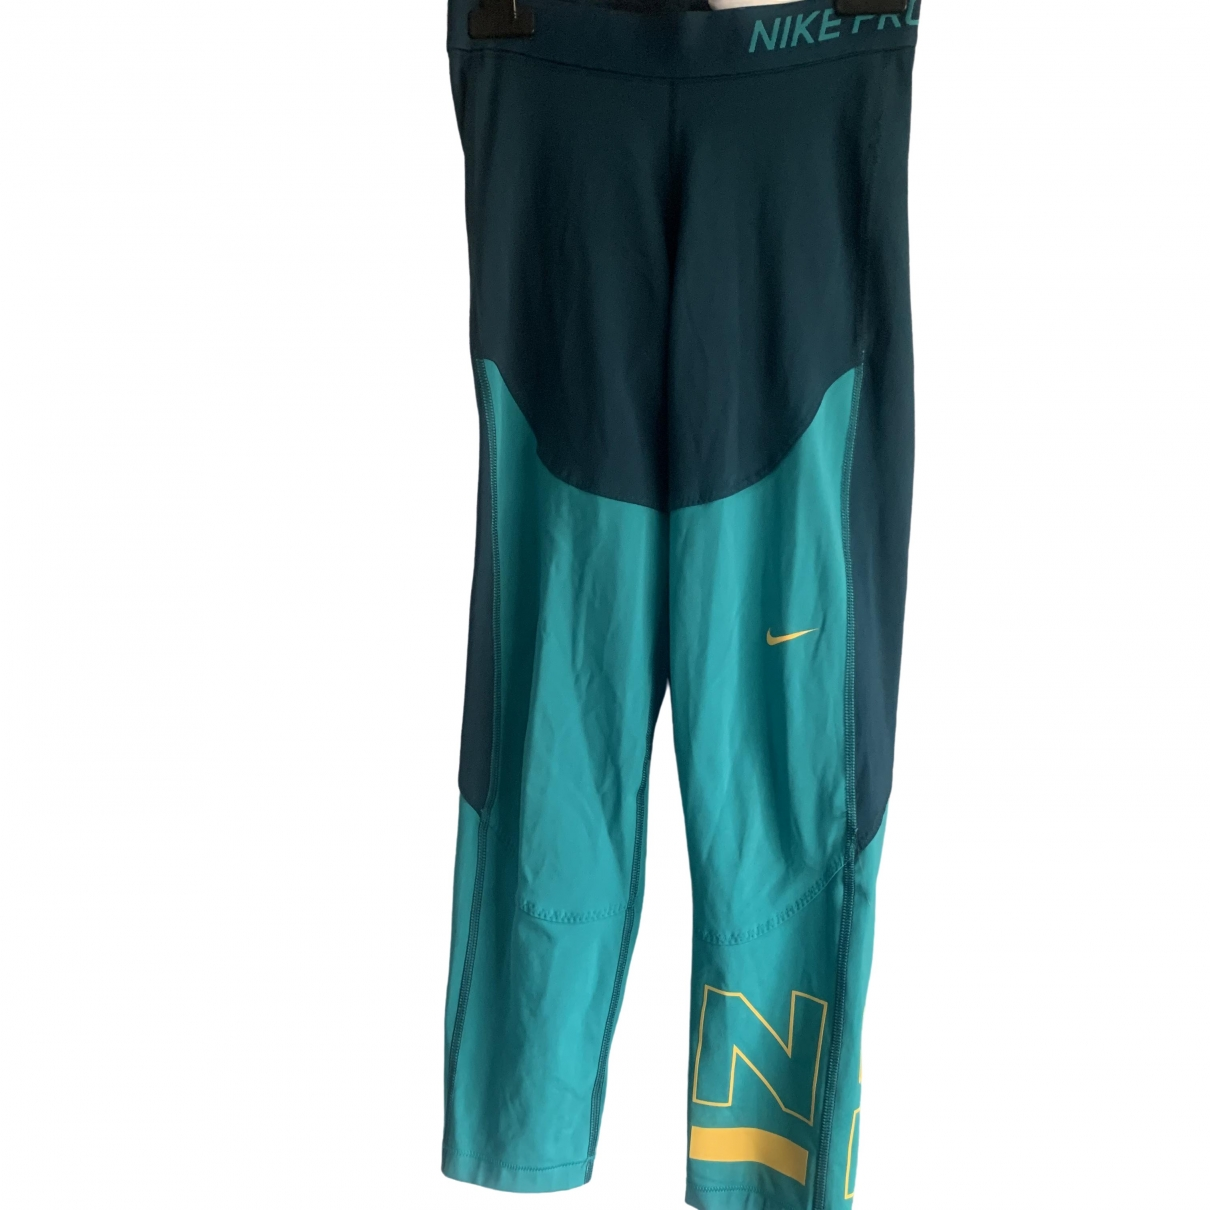 Nike \N Blue Cotton Trousers for Women 8 UK